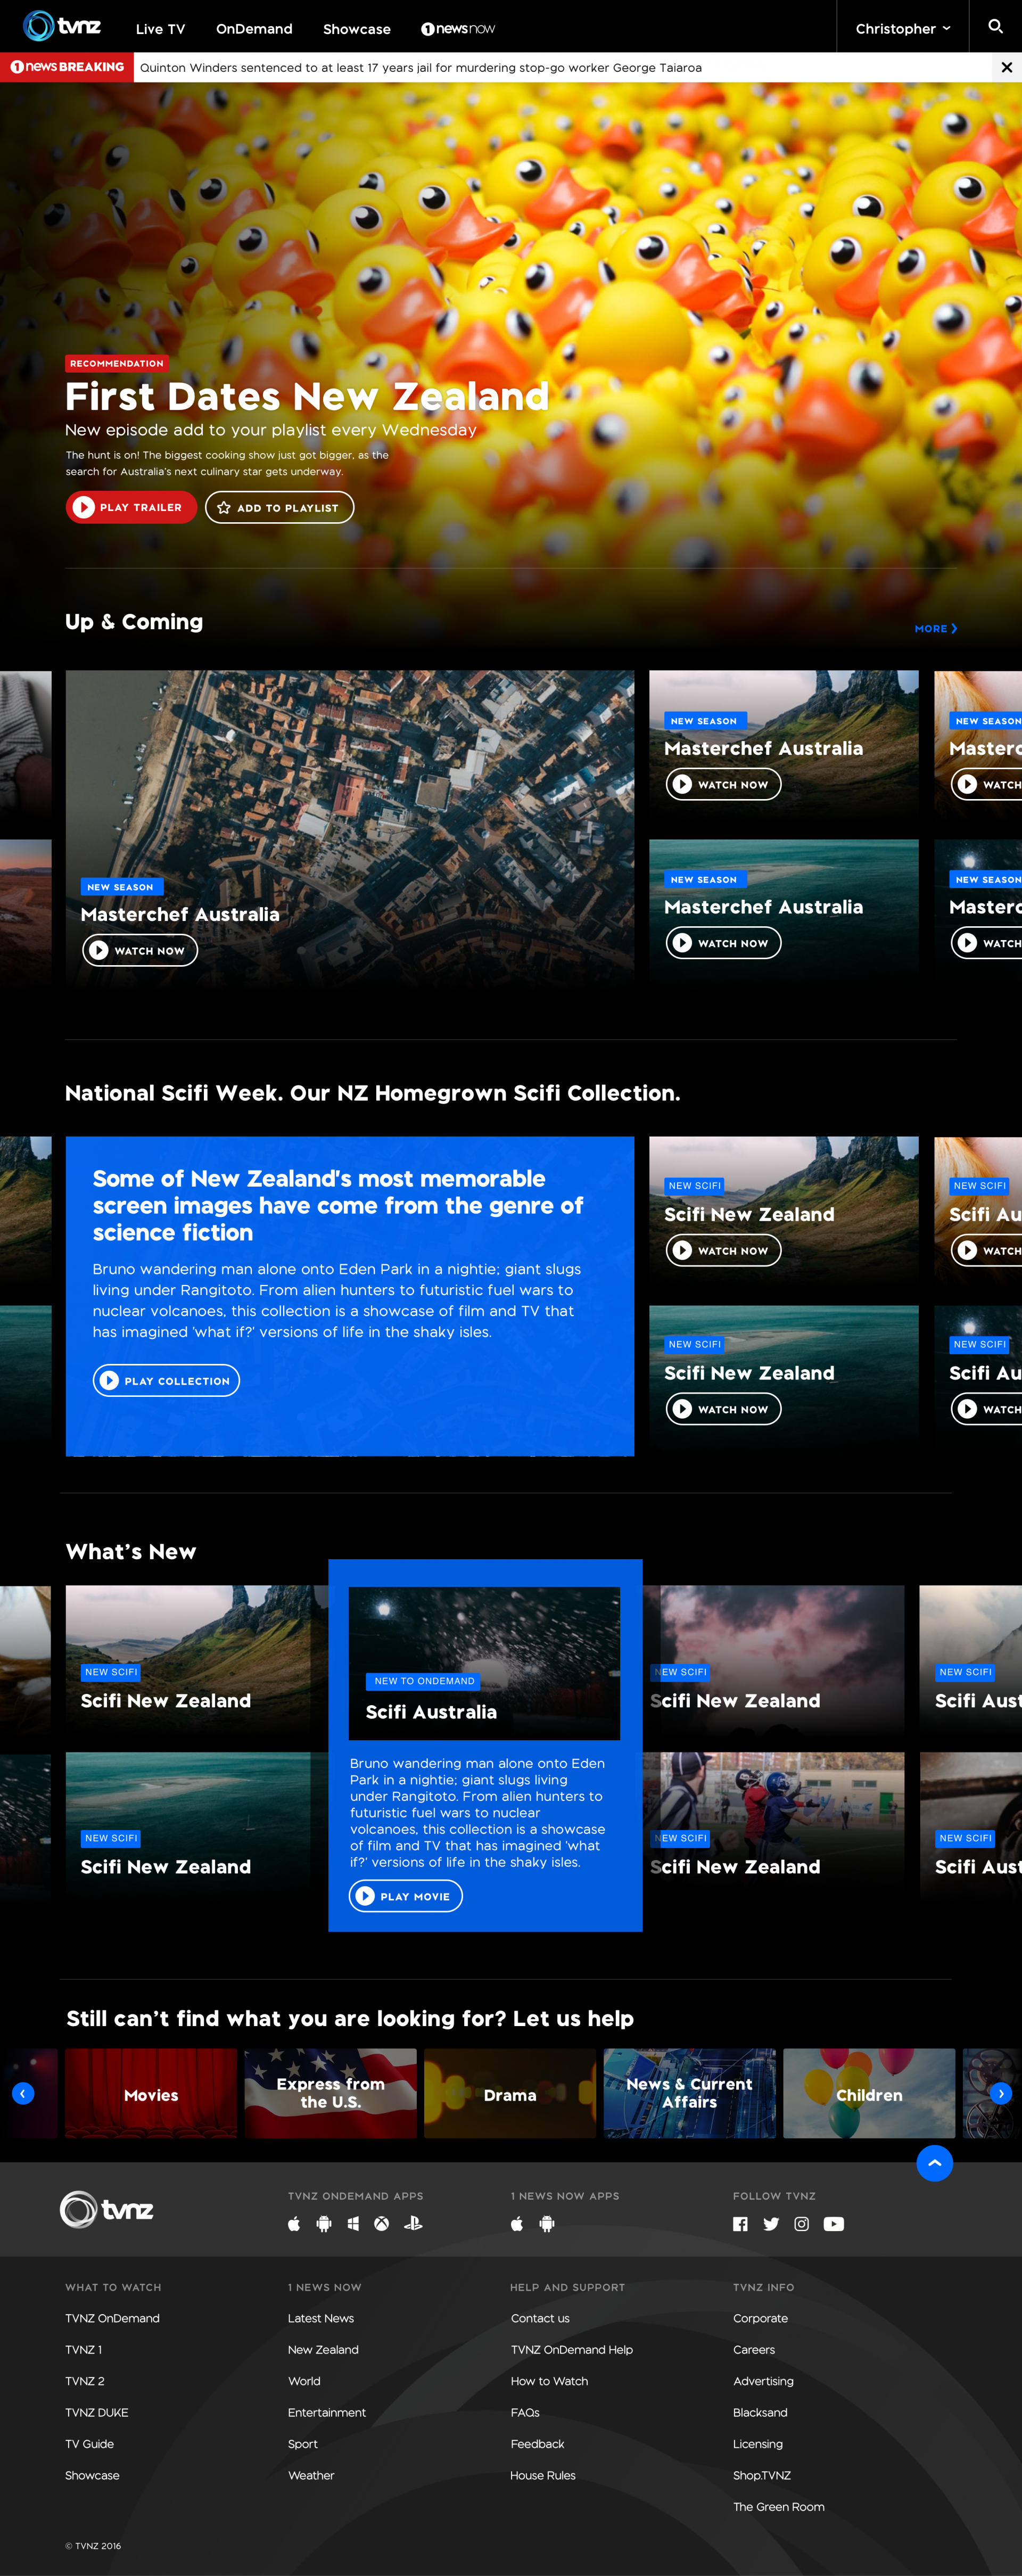 TVNZ OnDemand Redesign What to Watch